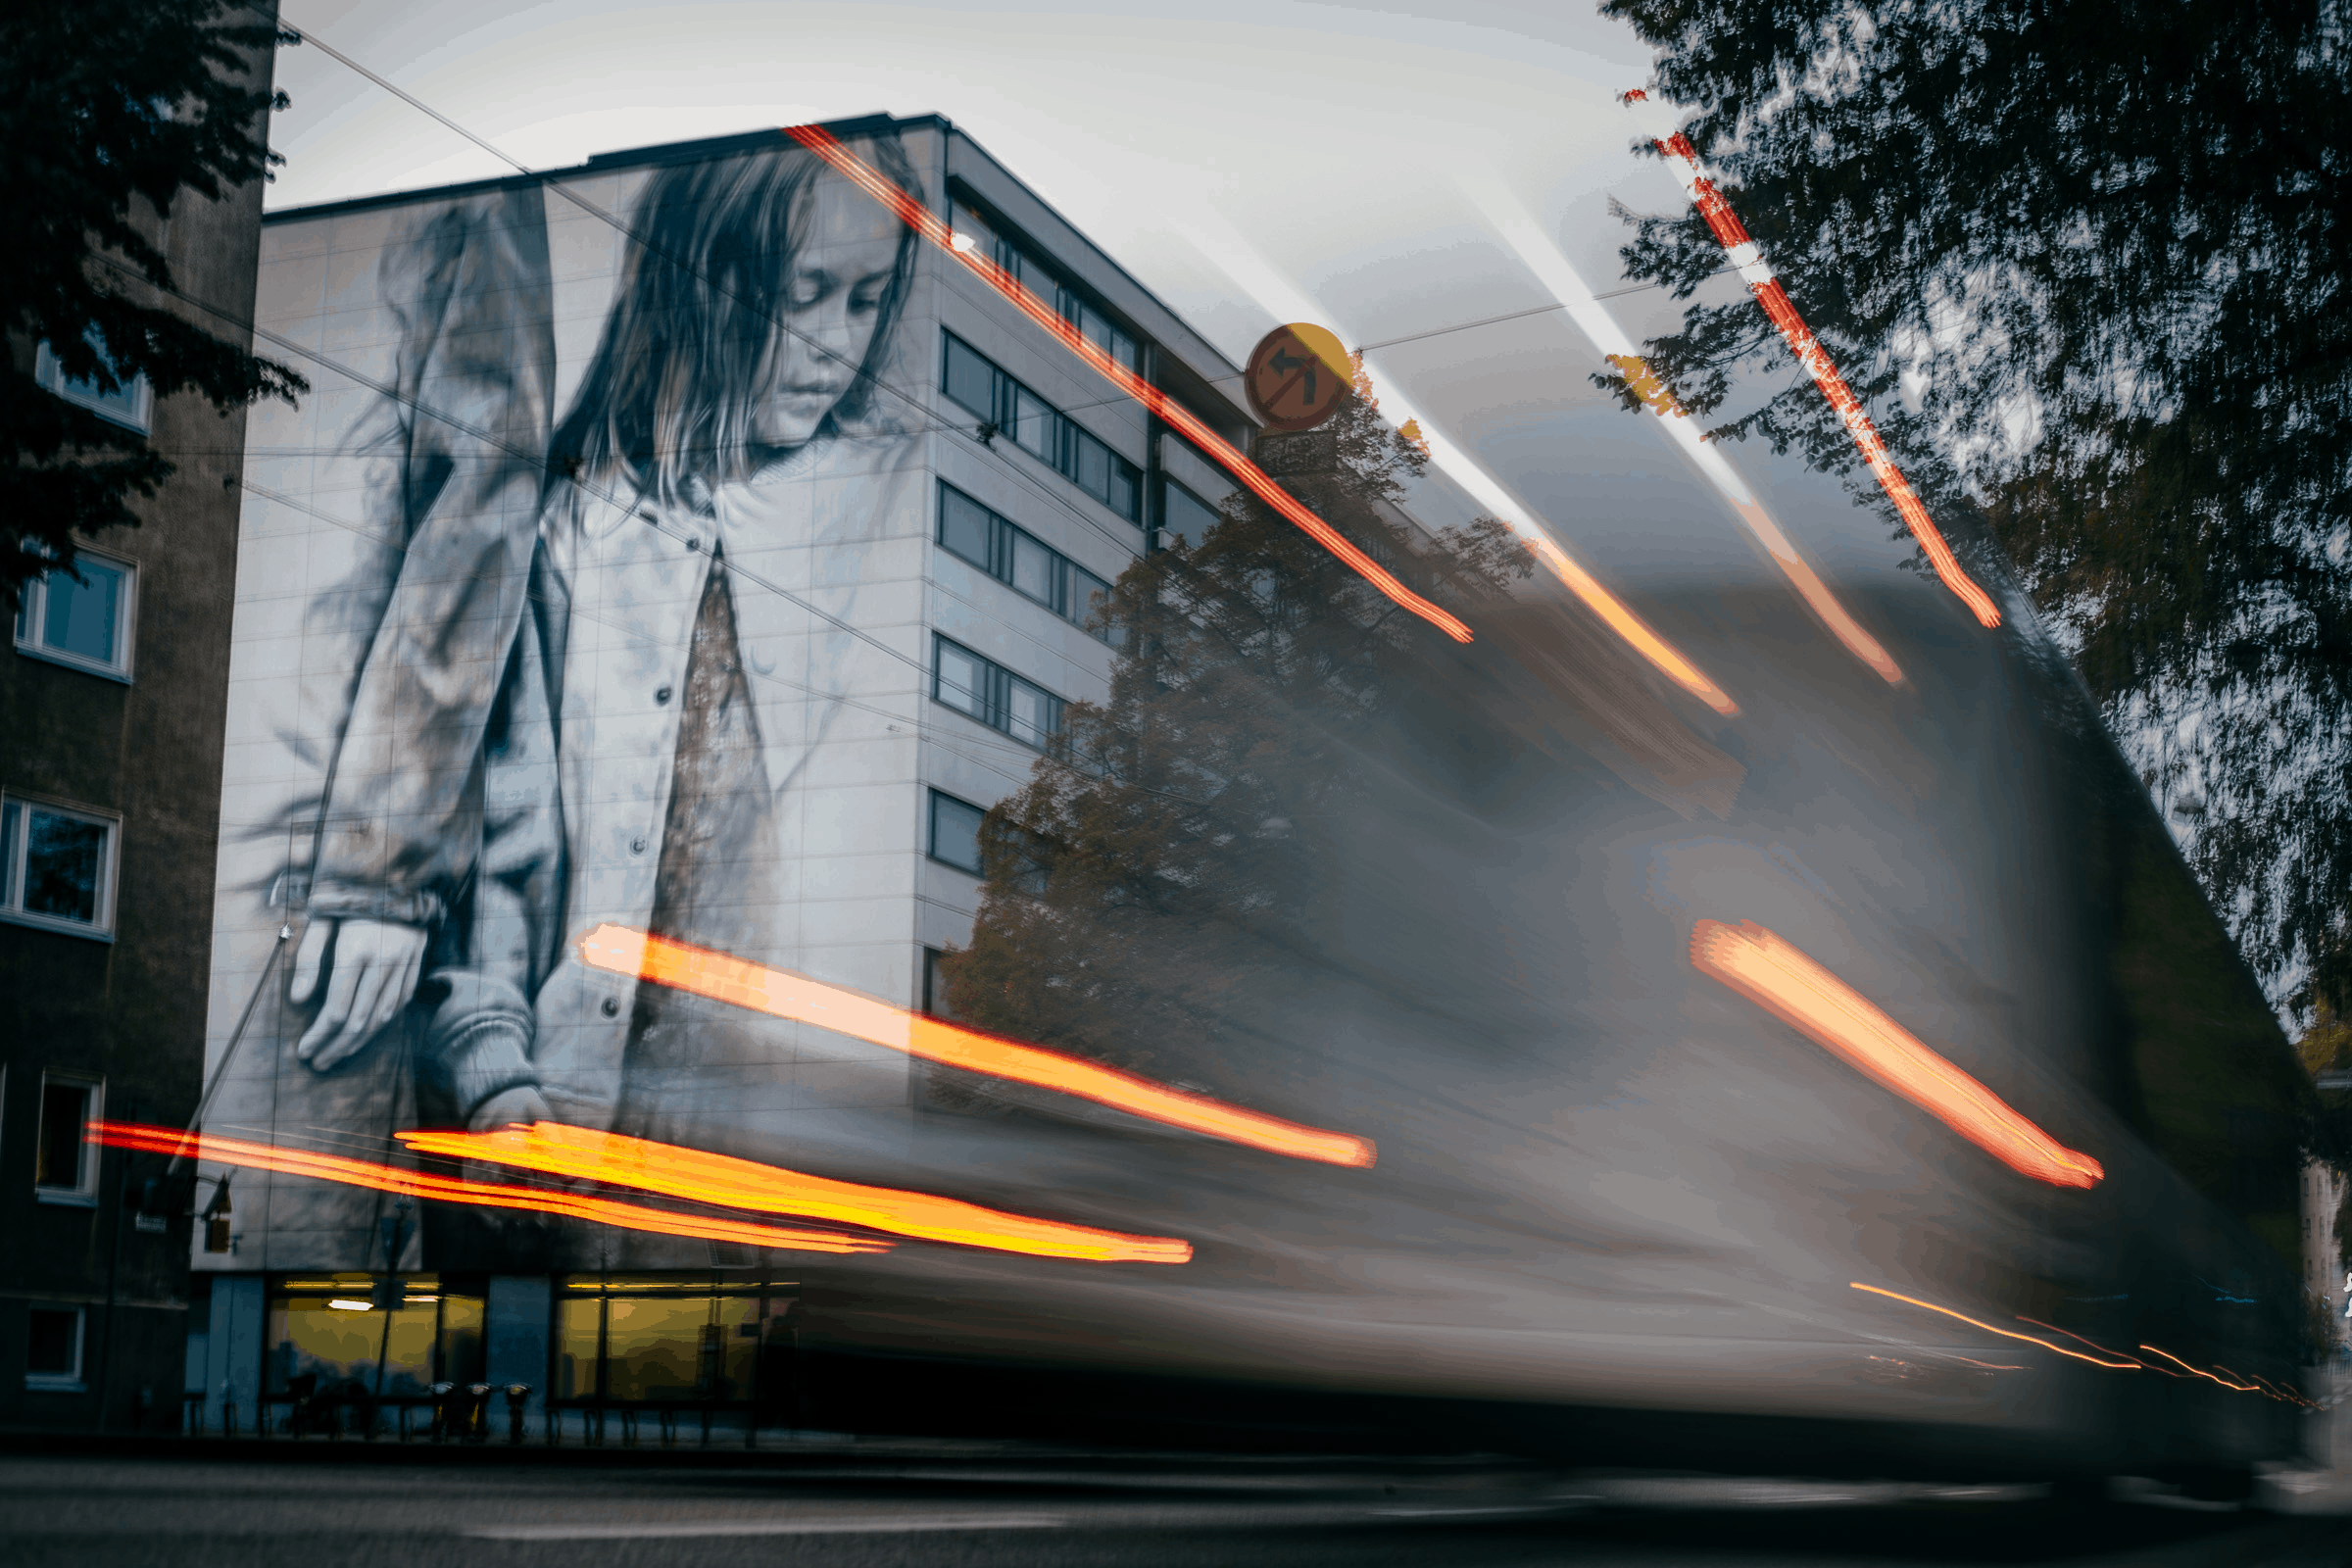 Lights of a vehicle pass a multi-story painting of a young girl on an apartment wall